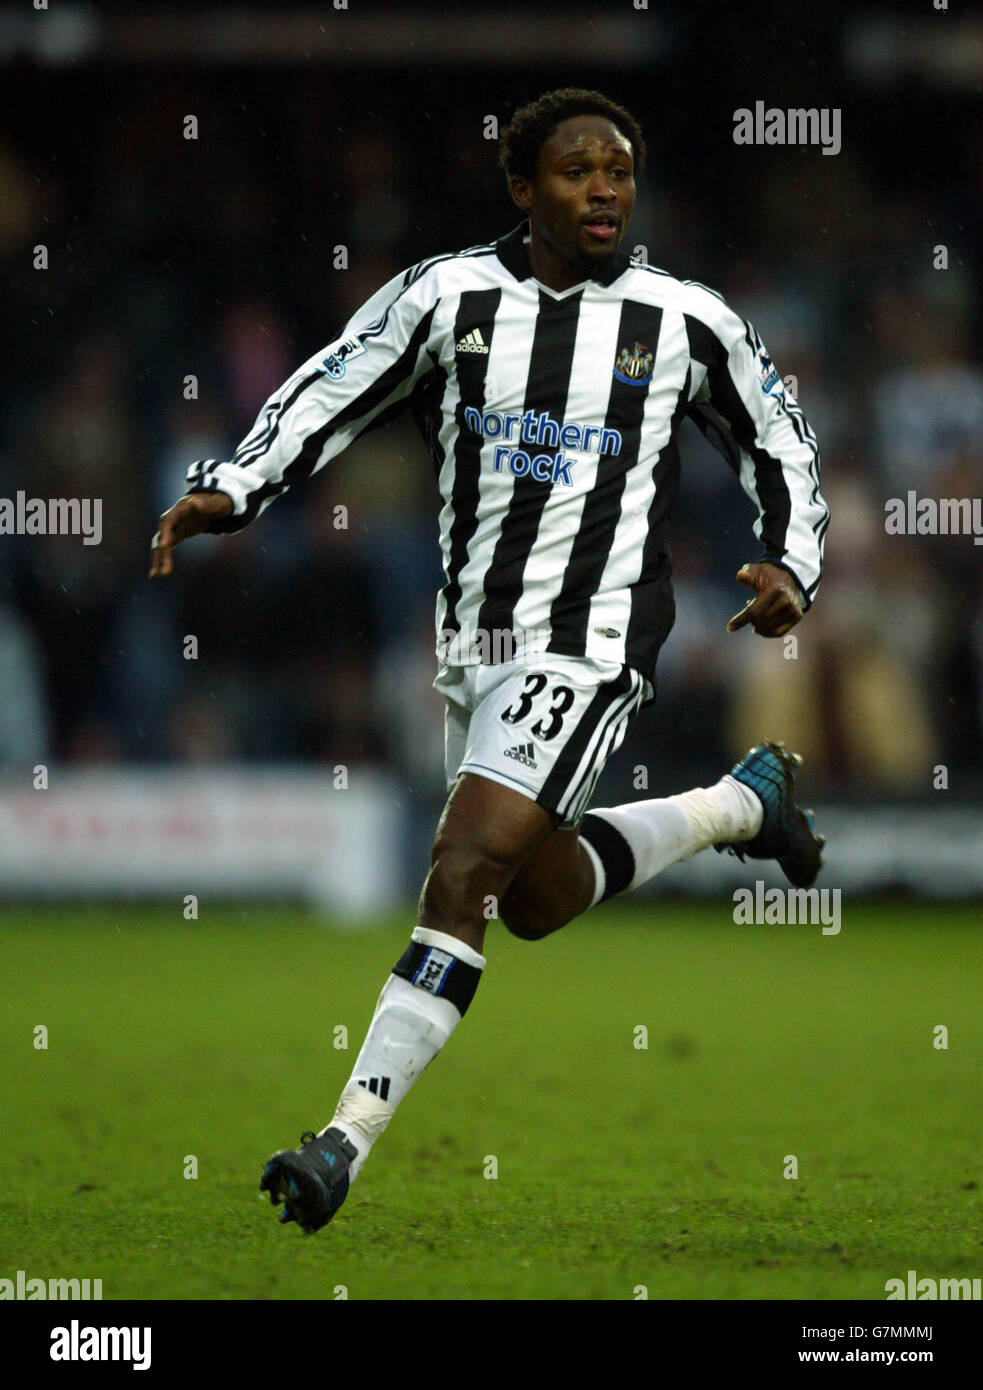 Soccer - FA Cup - Third Round - Yeading v Newcastle United - Stock Image